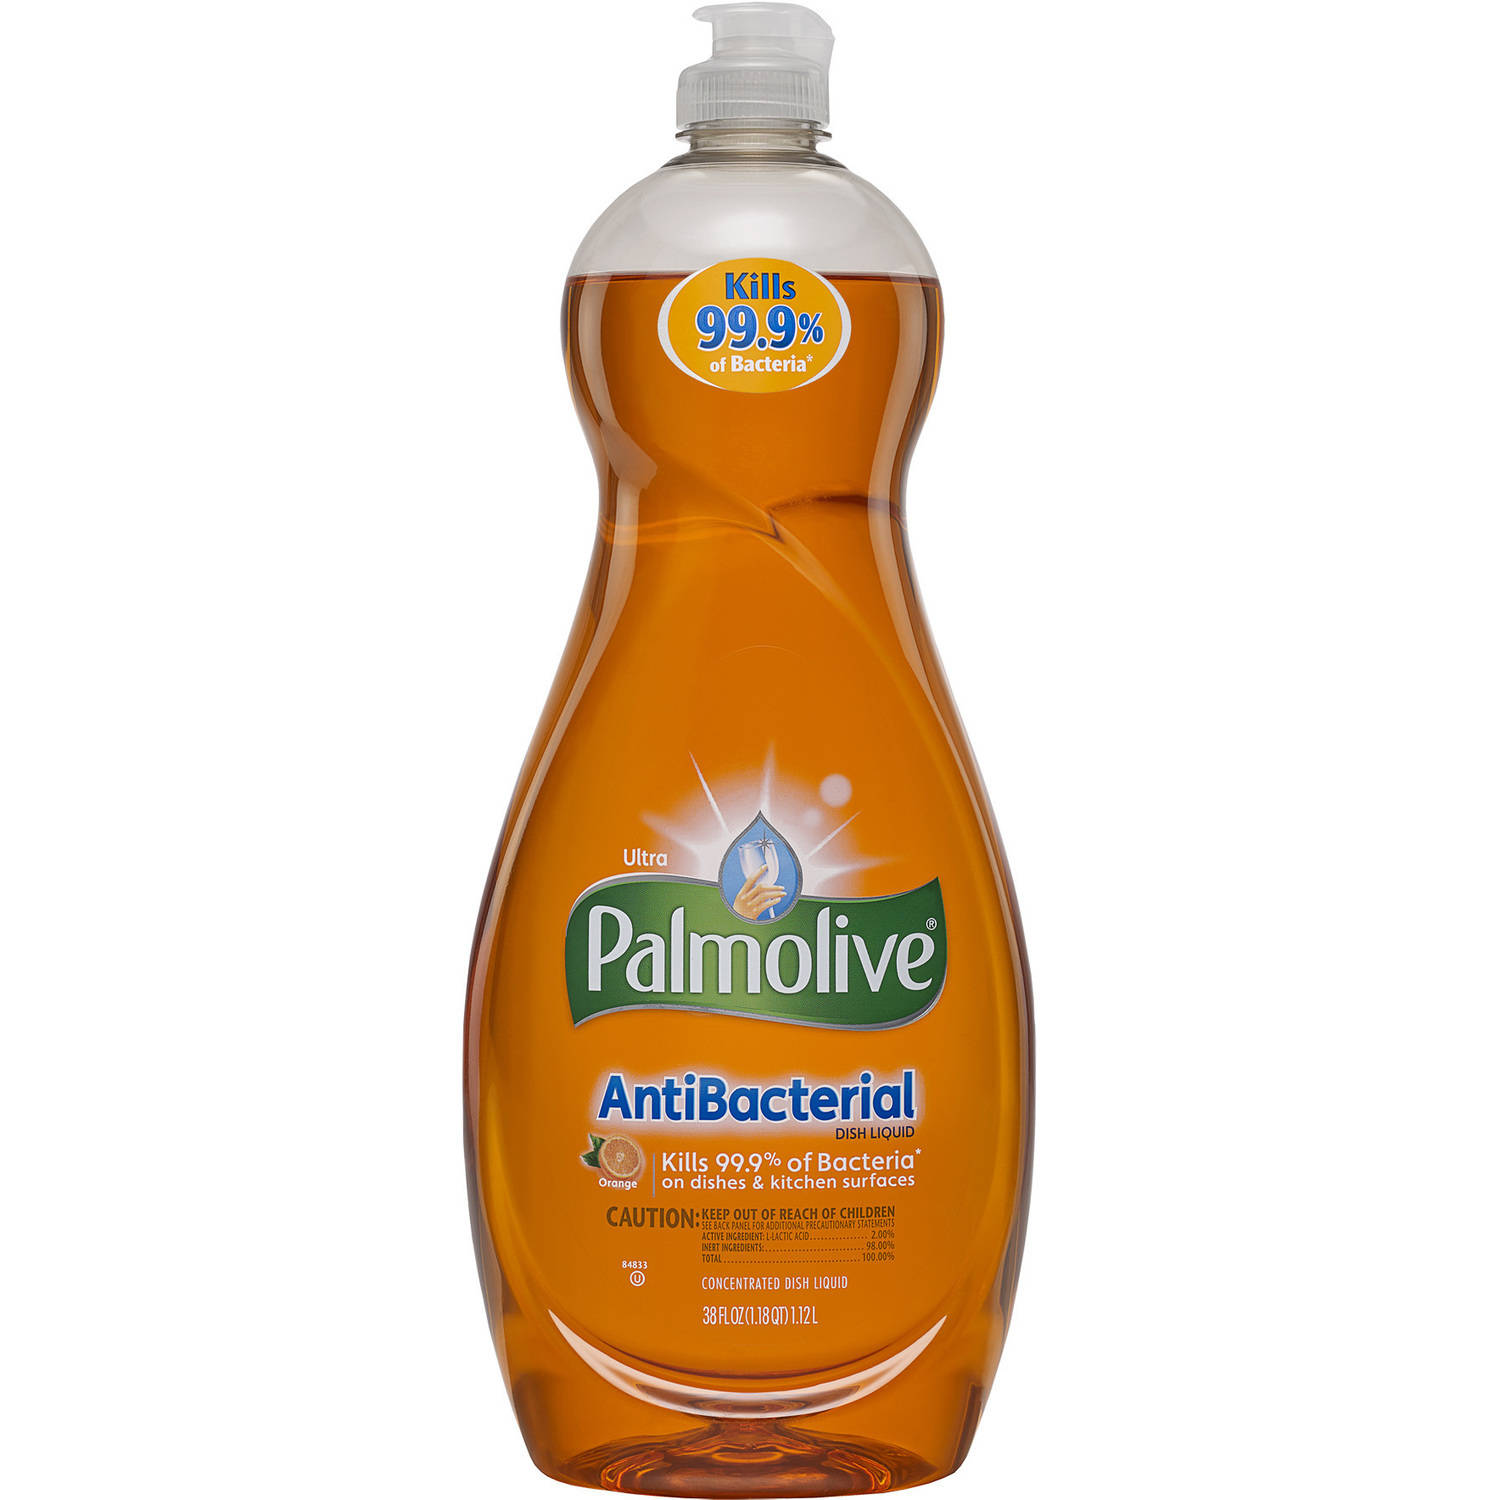 Palmolive Ultra Dish Liquid, Antibacterial, 38 Fluid Ounce